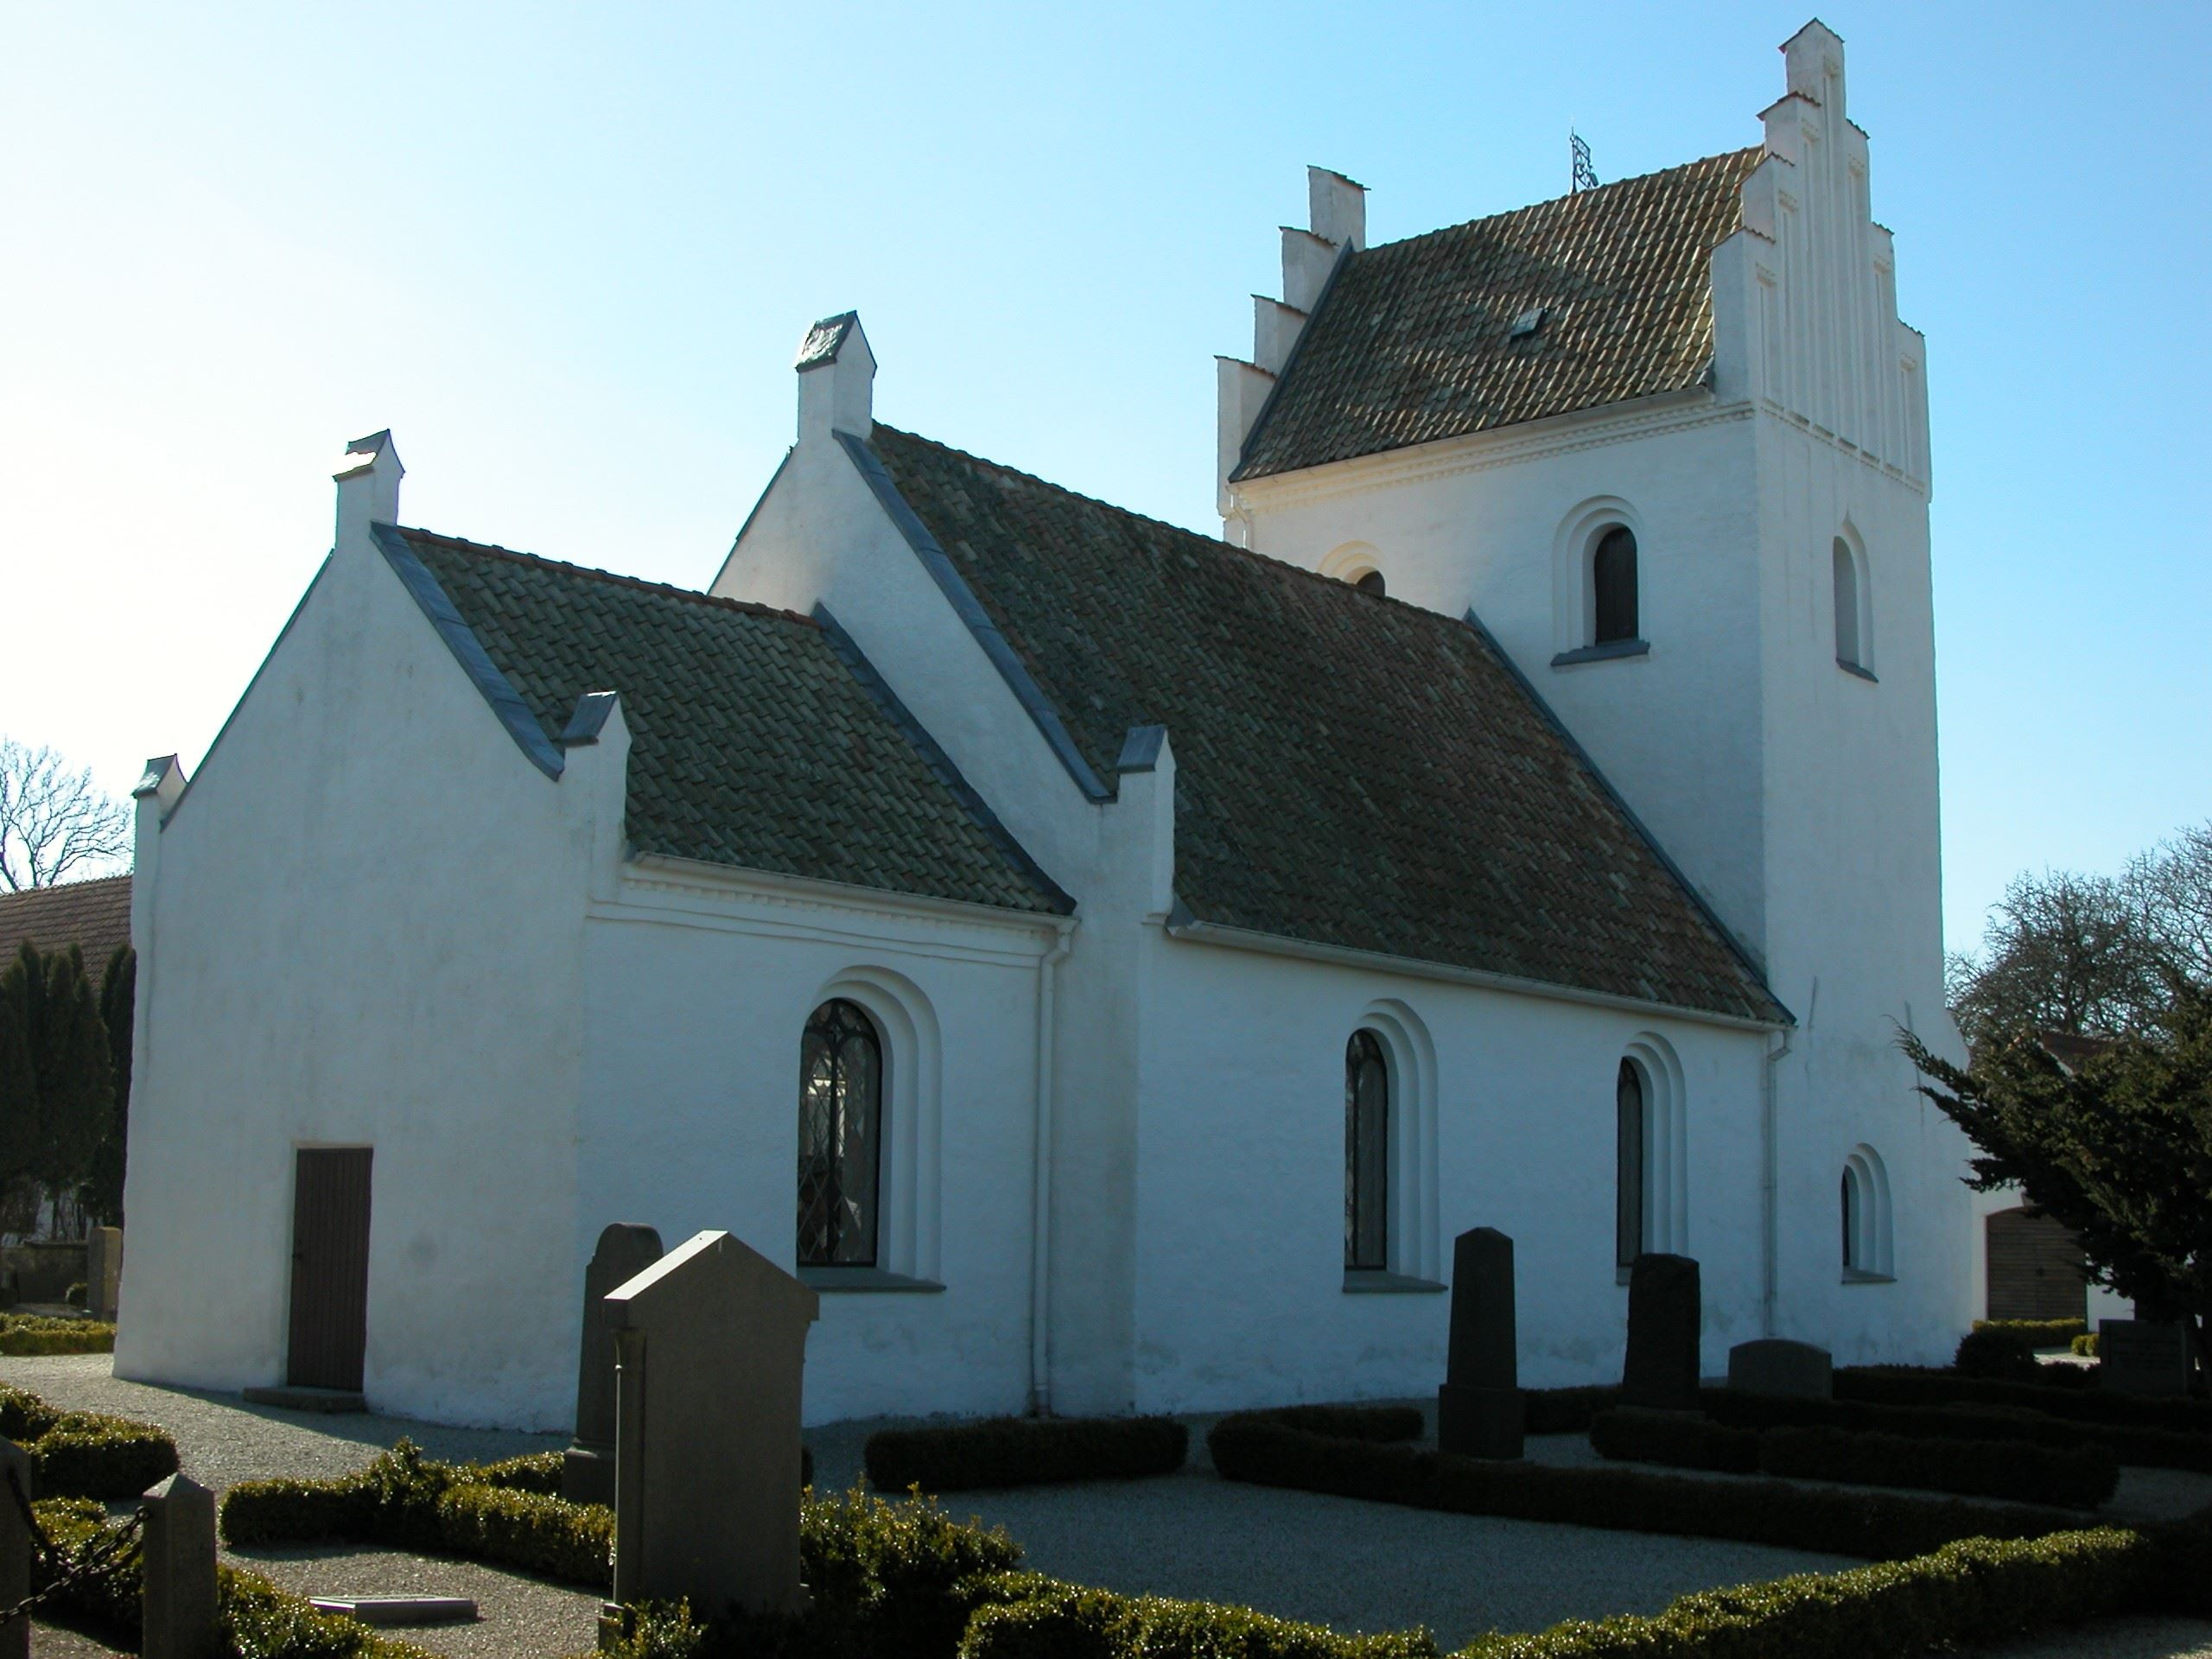 Västra Vemmerlöv's church